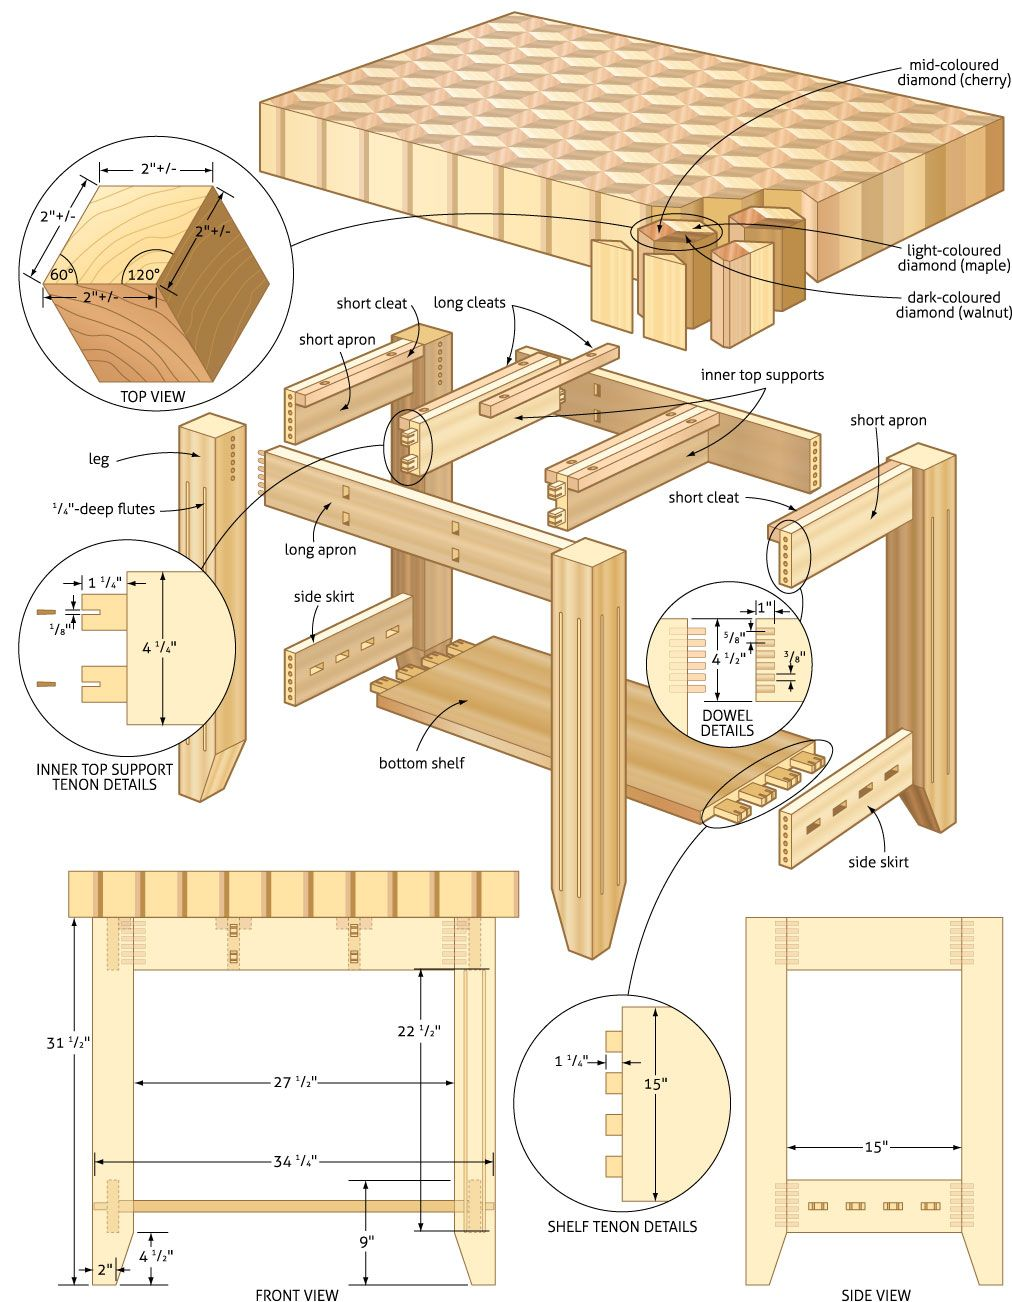 Teds Woodworking Review Teds Wood Working Offers 16 000 Woodworking Plans And Woodworking Plans Beginner Woodworking Projects Plans Woodworking Furniture Plans